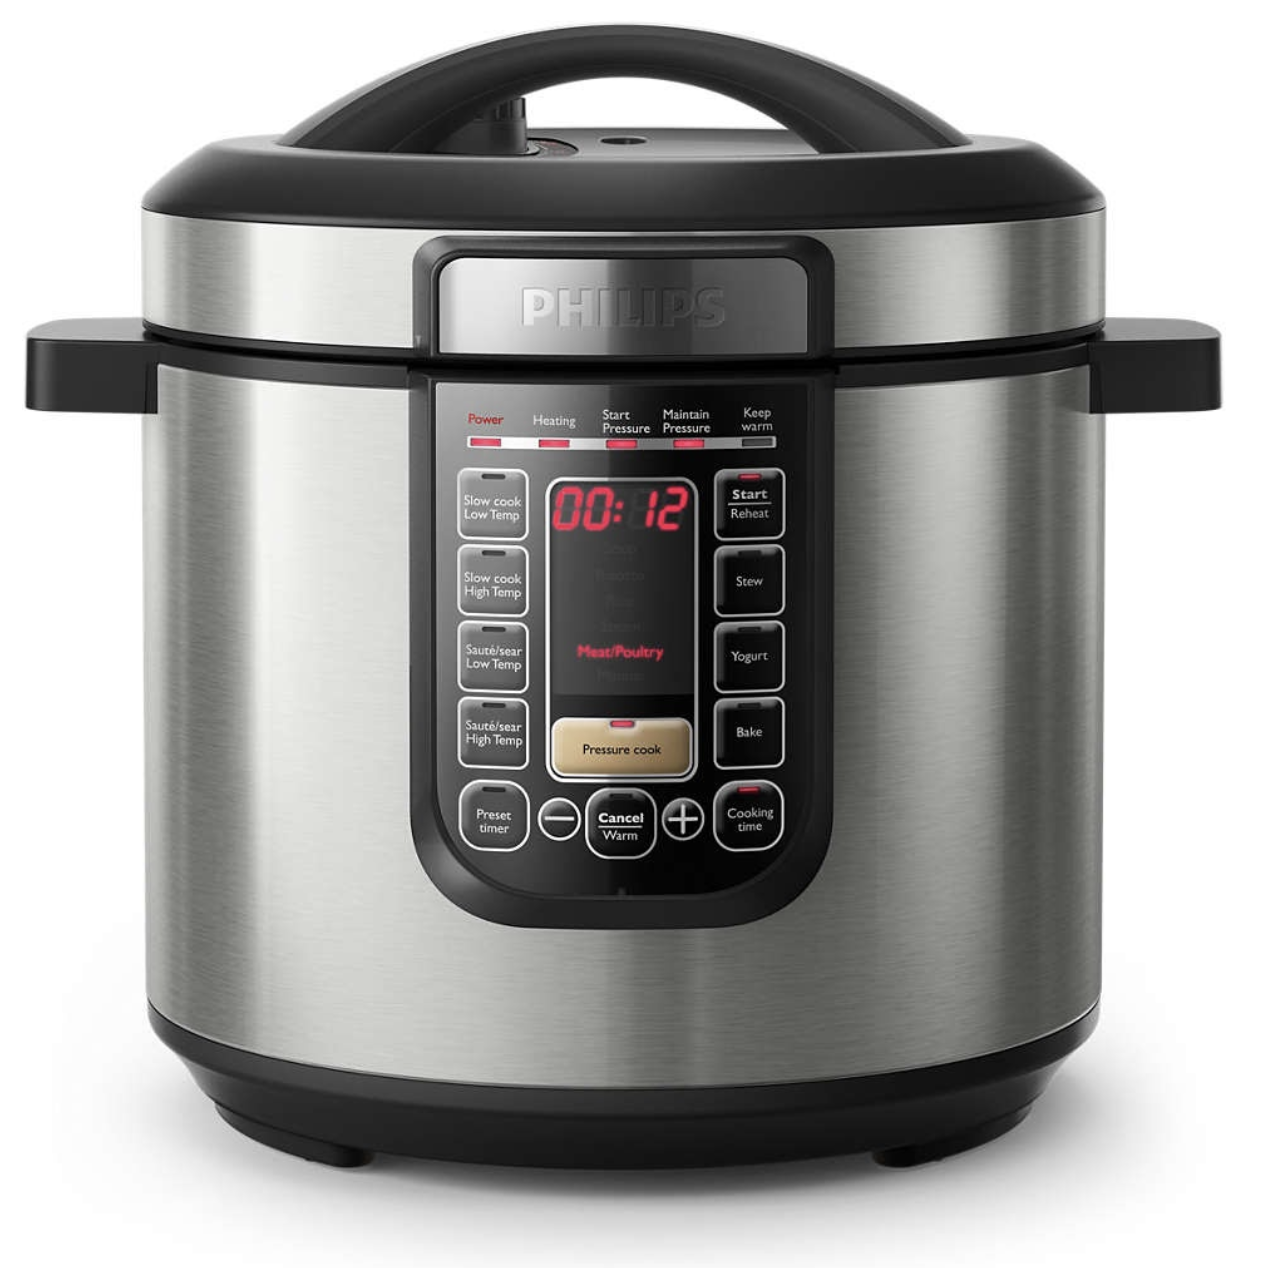 Our Pick of Best Slow Cooker in Australia 2020